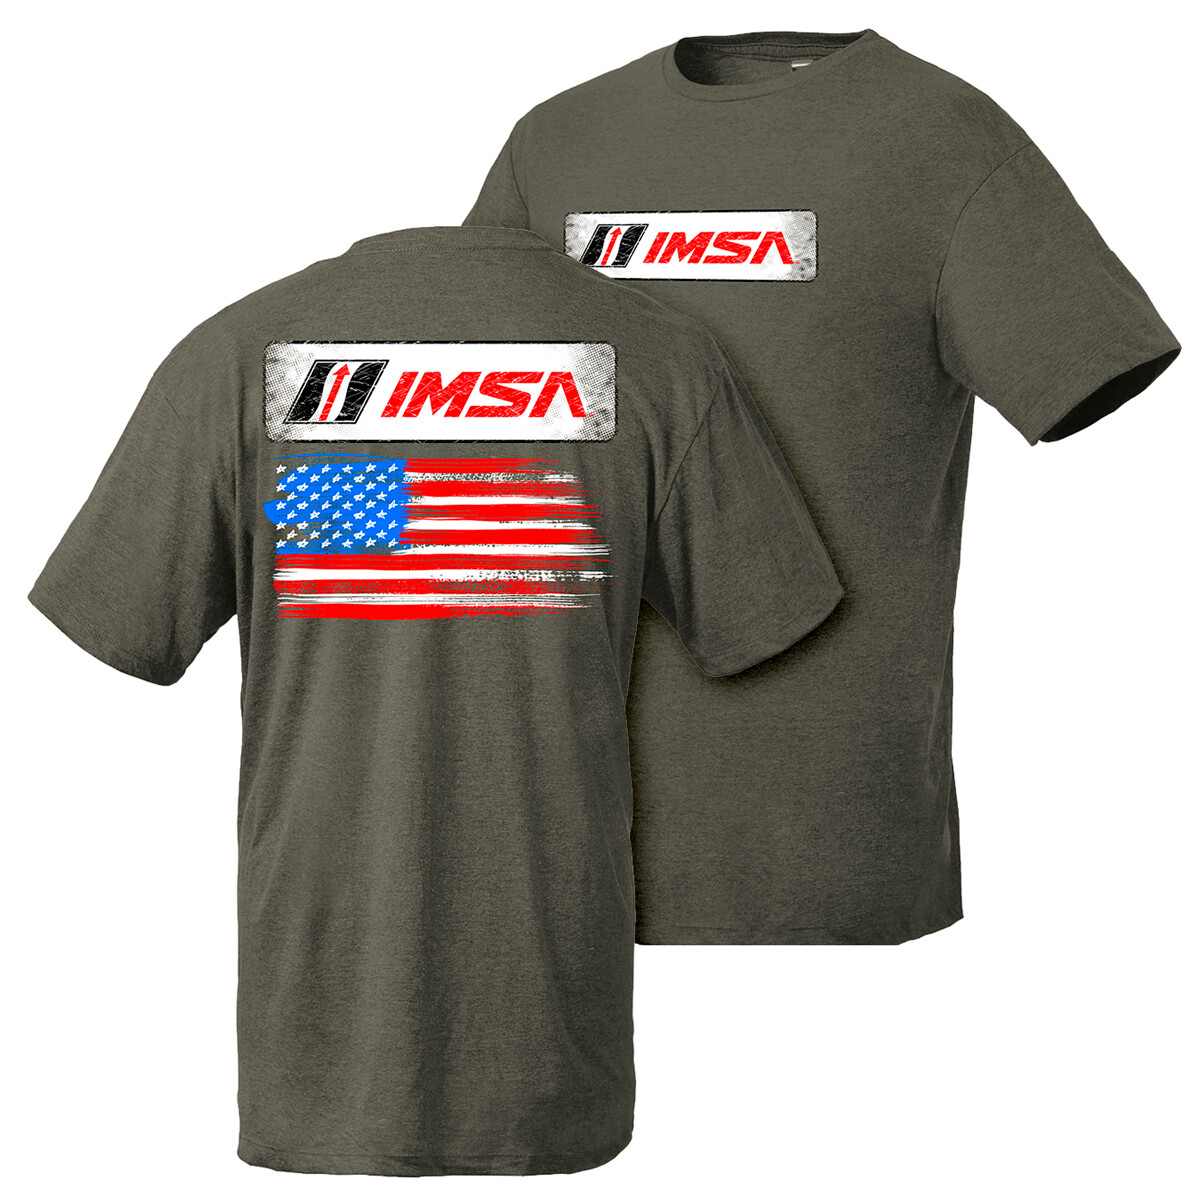 IMSA Flag Design Tee - Olive Heather